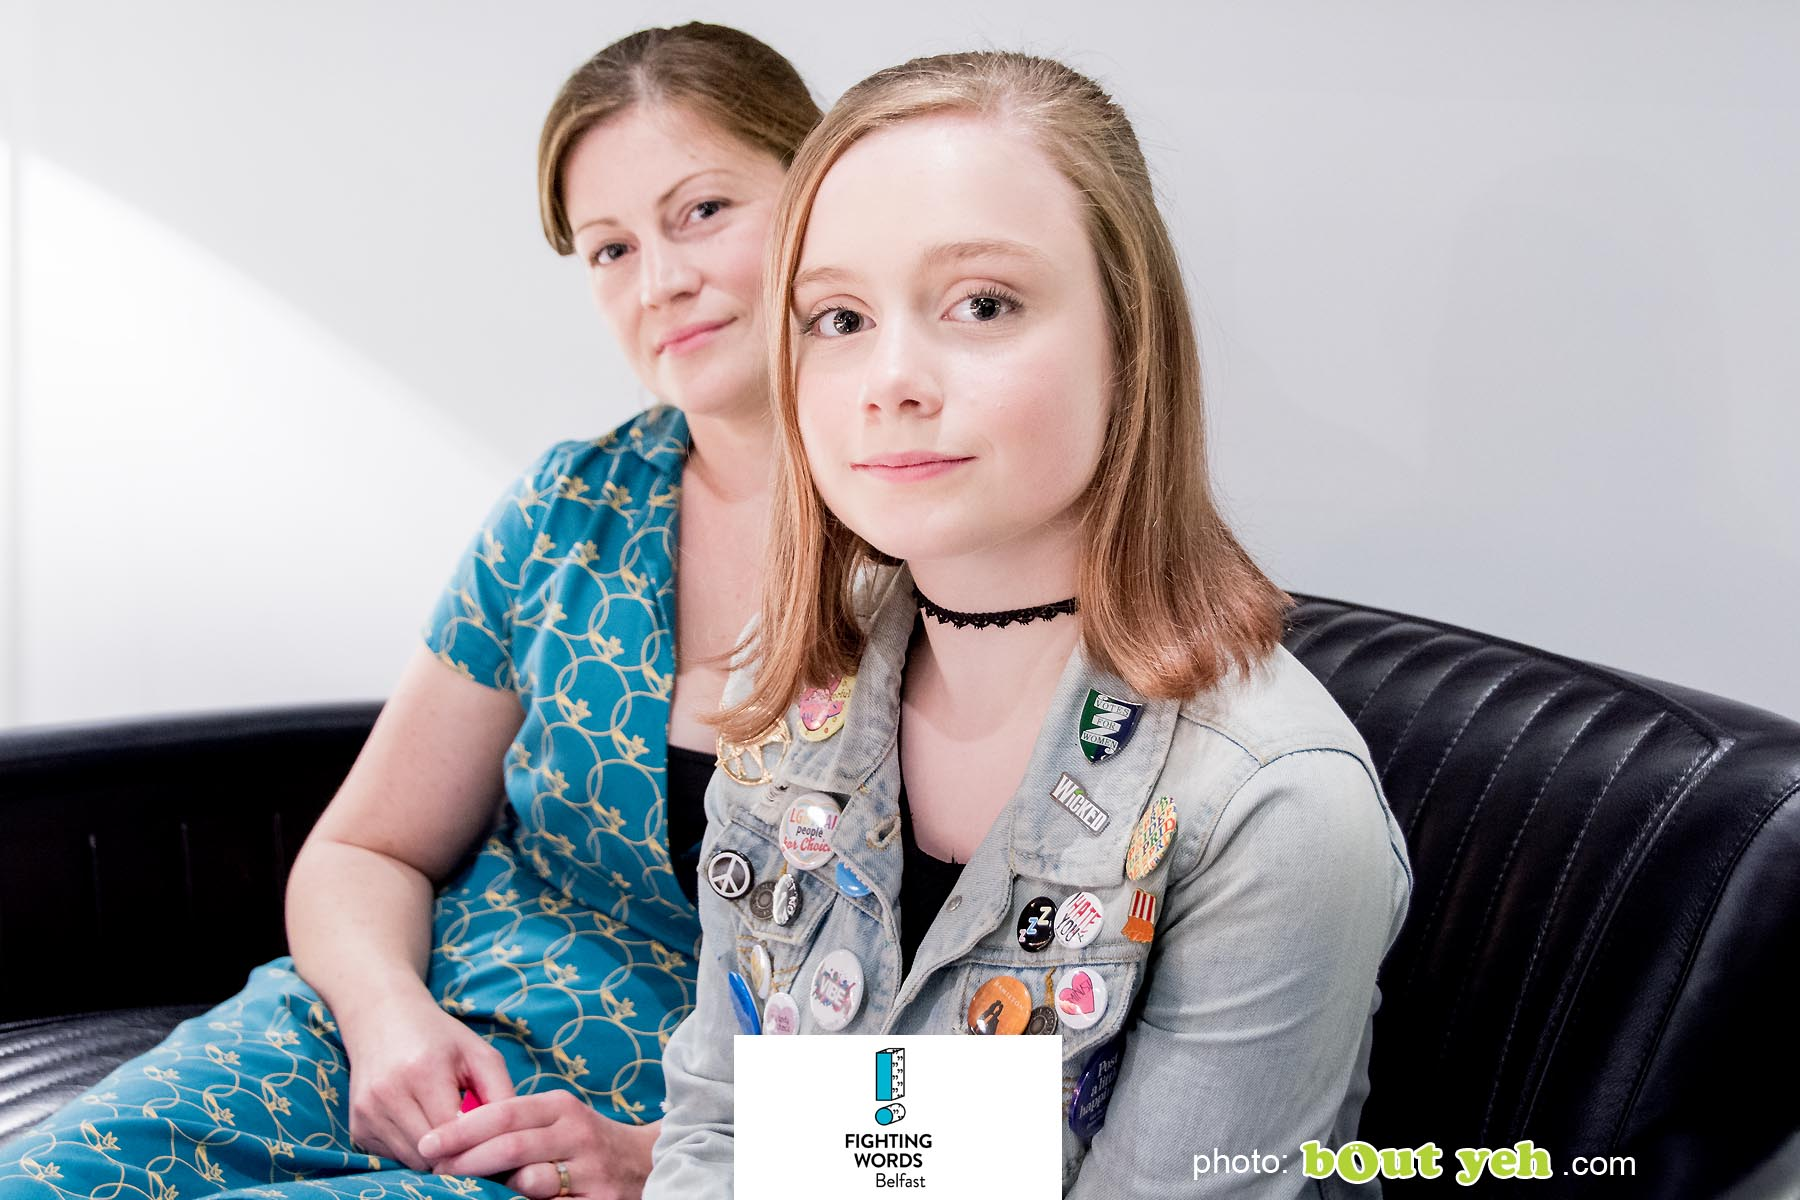 Sophia and Kelly of Write Club photographed by Bout Yeh photographers Belfast - photo 6248